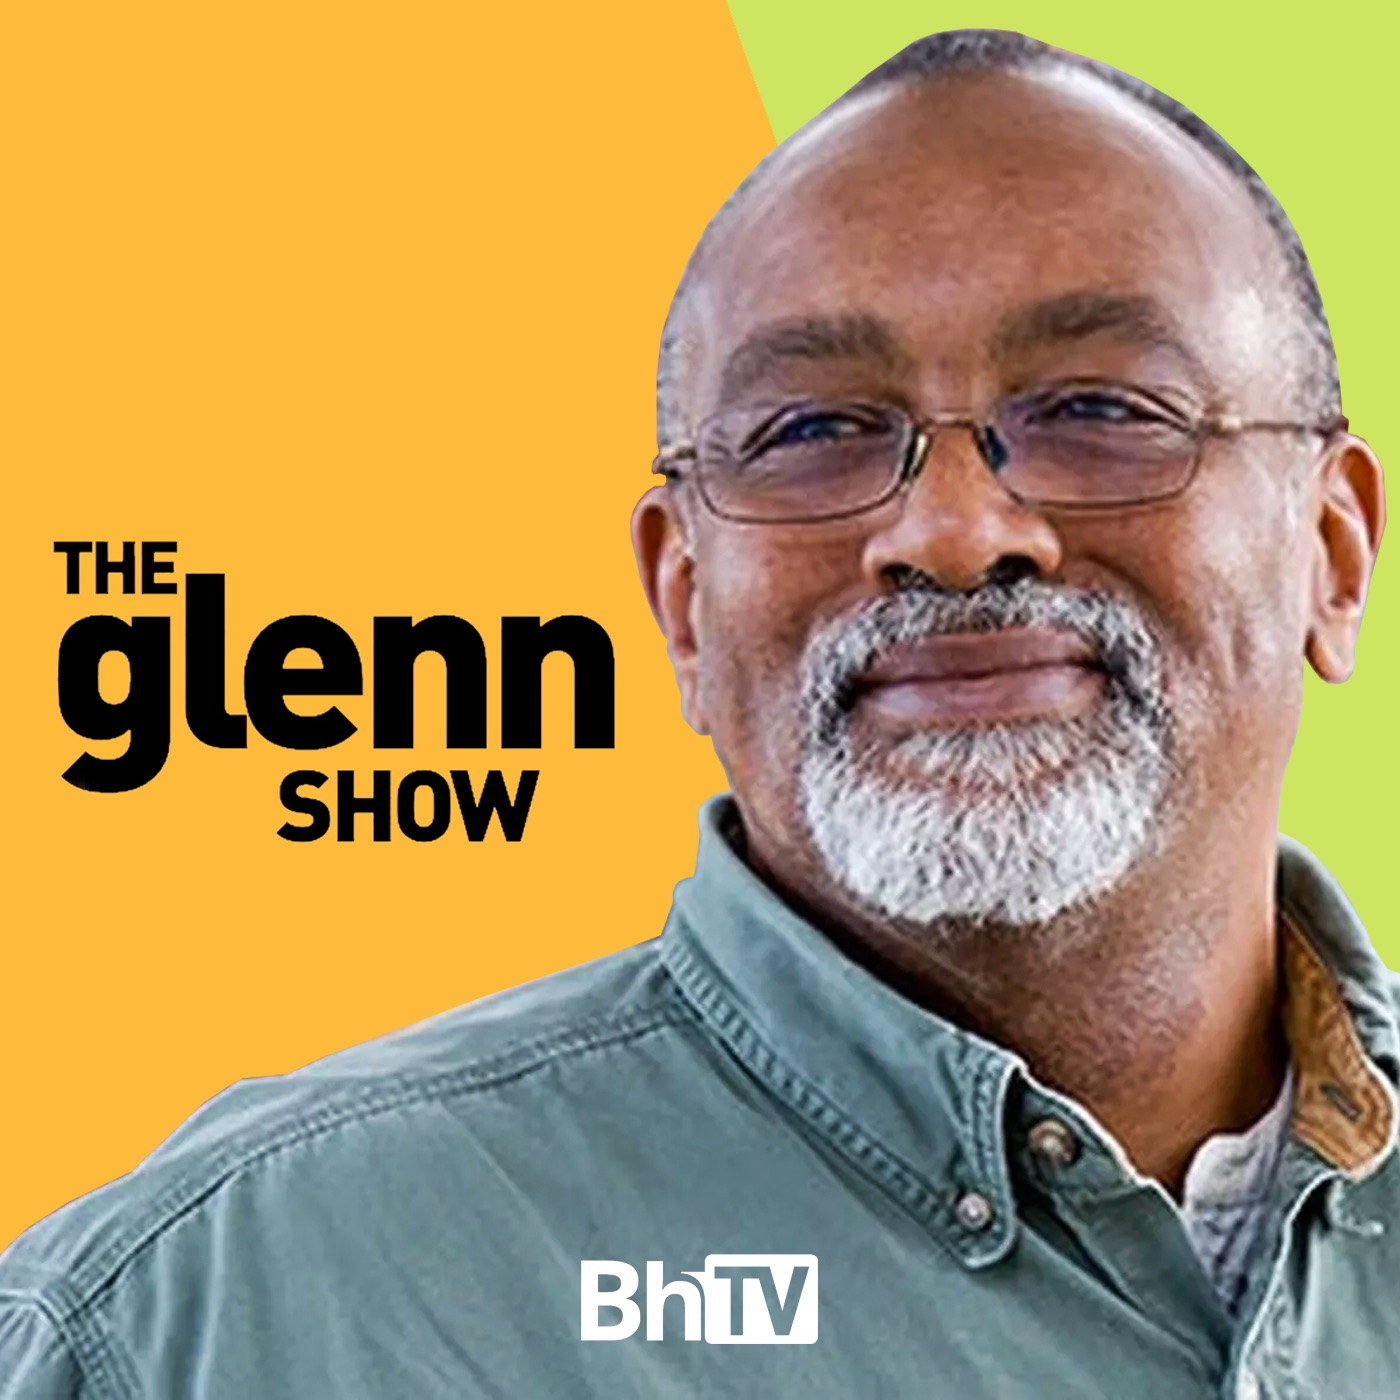 BhTV: The Glenn Show (audio)